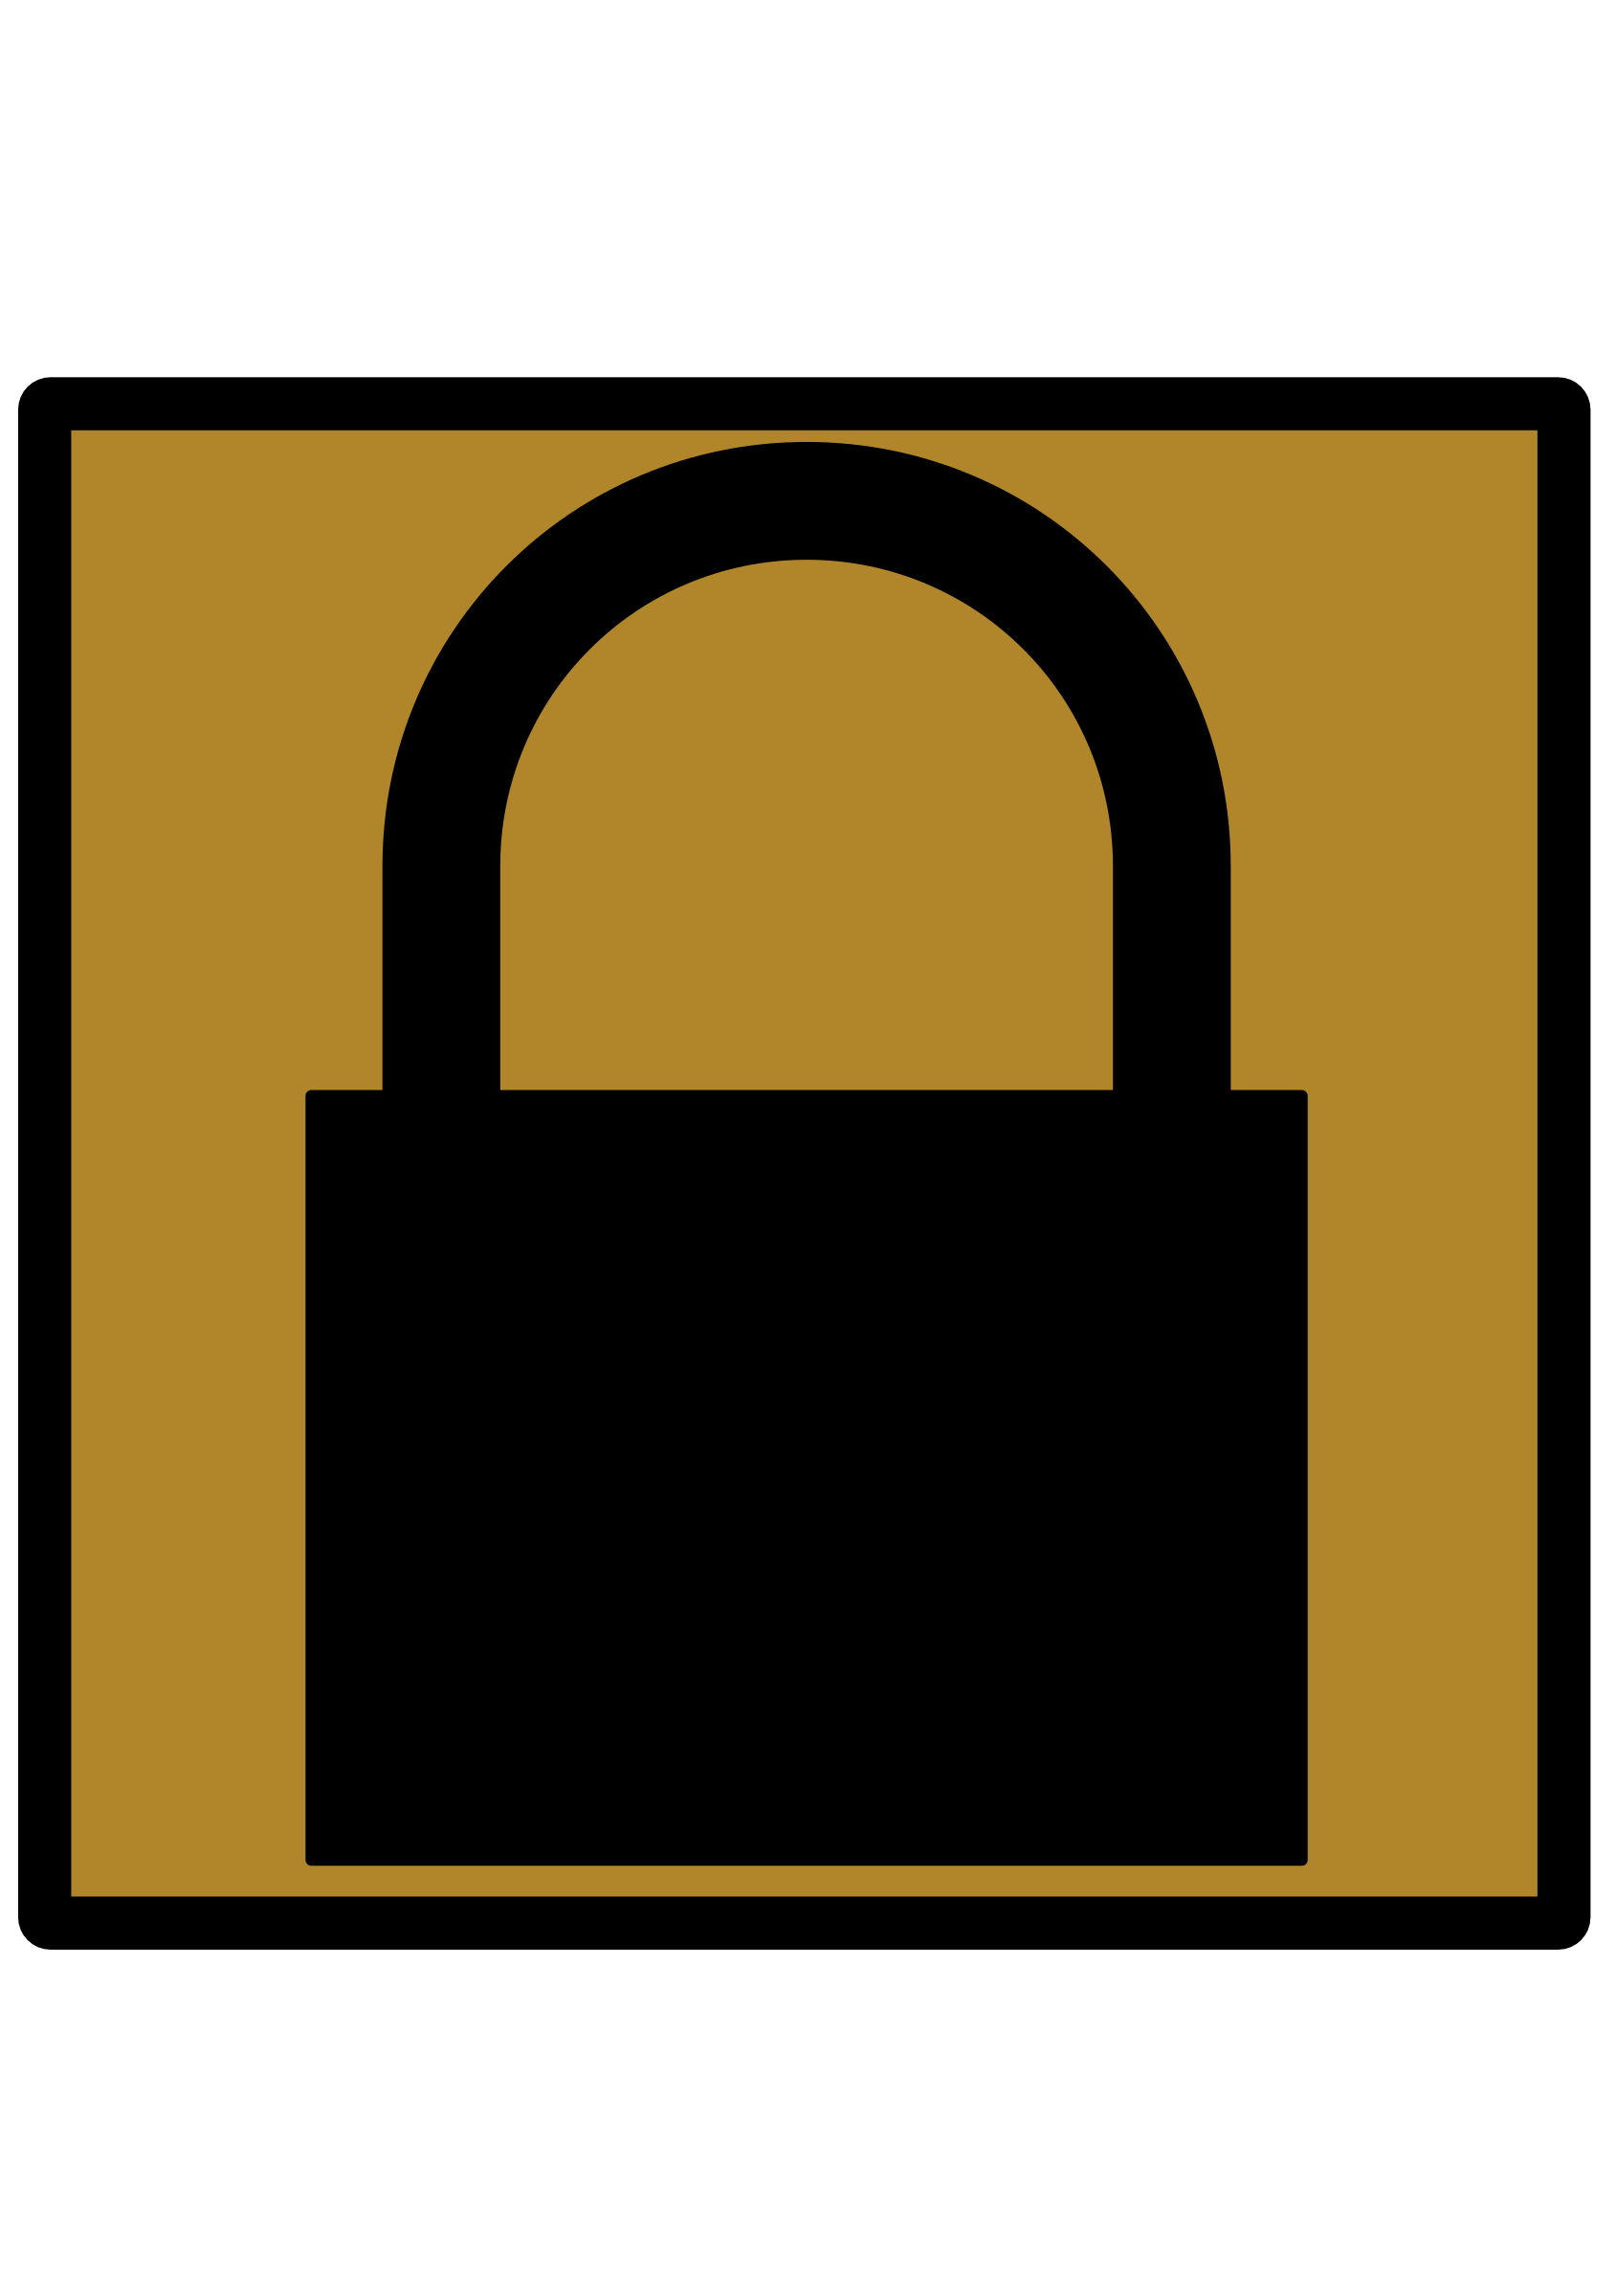 Padlock Silhouette Icon [Umber] by Vookimedlo